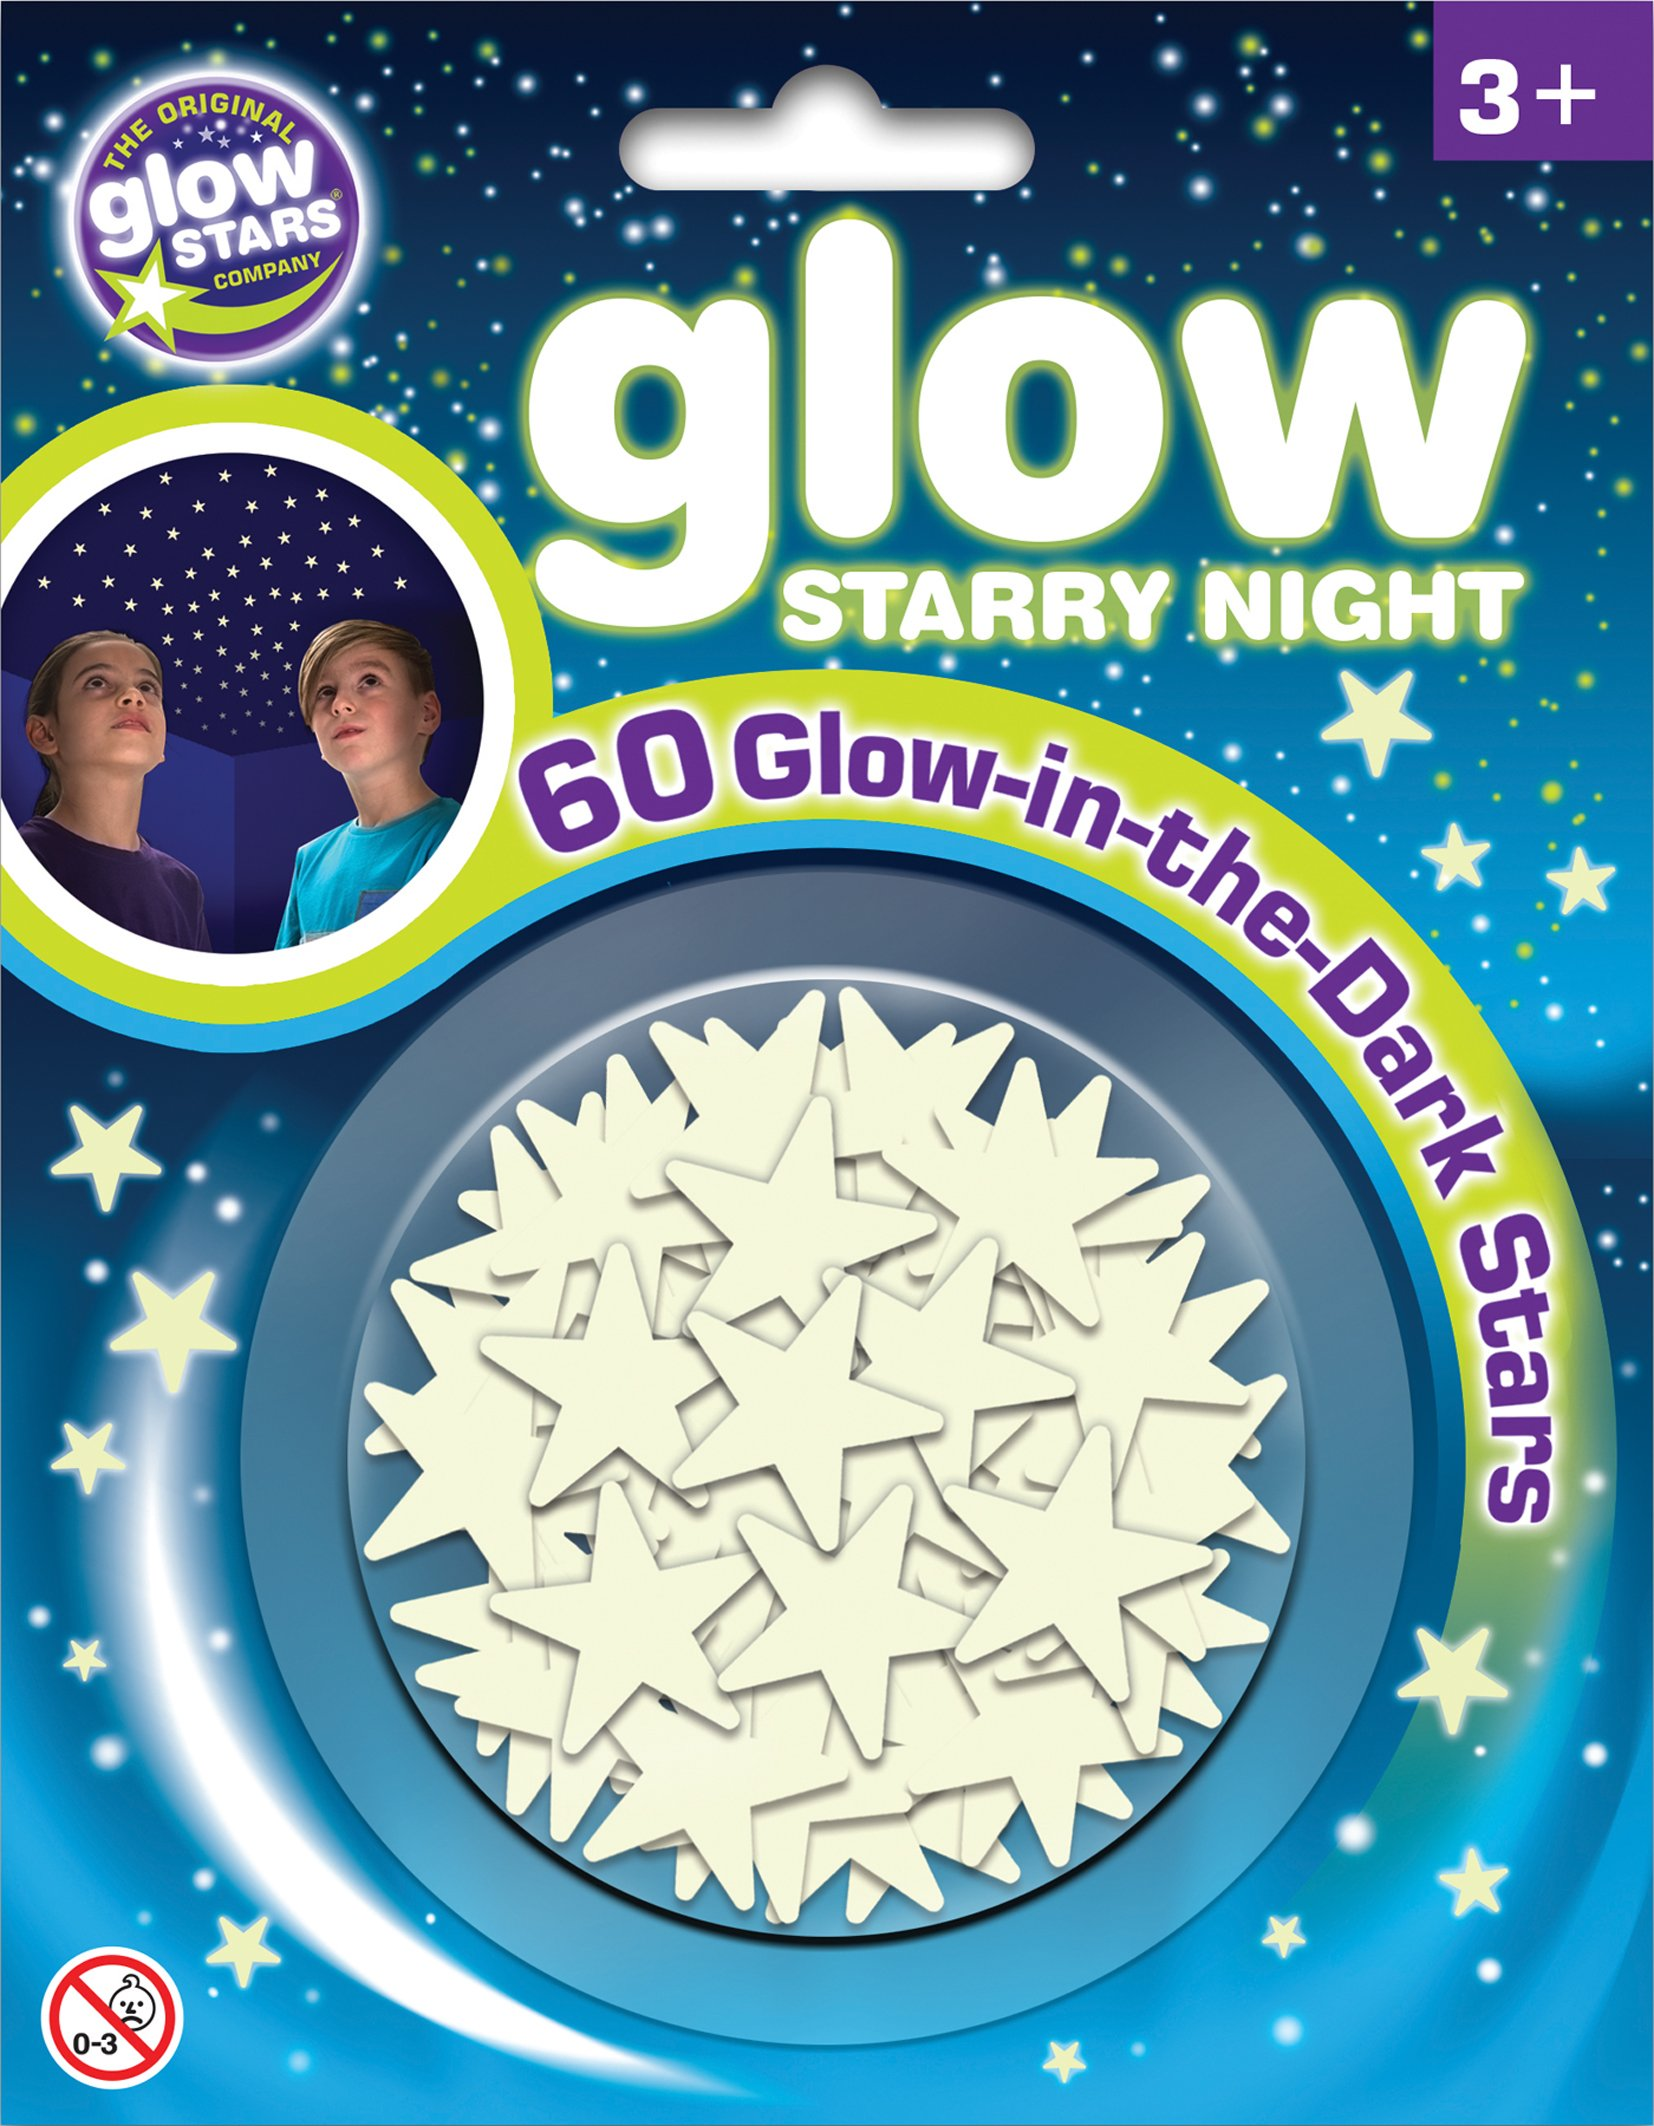 Brainstorm Toys B8605 The Original Glow Stars Company Glow Starry Night Room Decoration 1